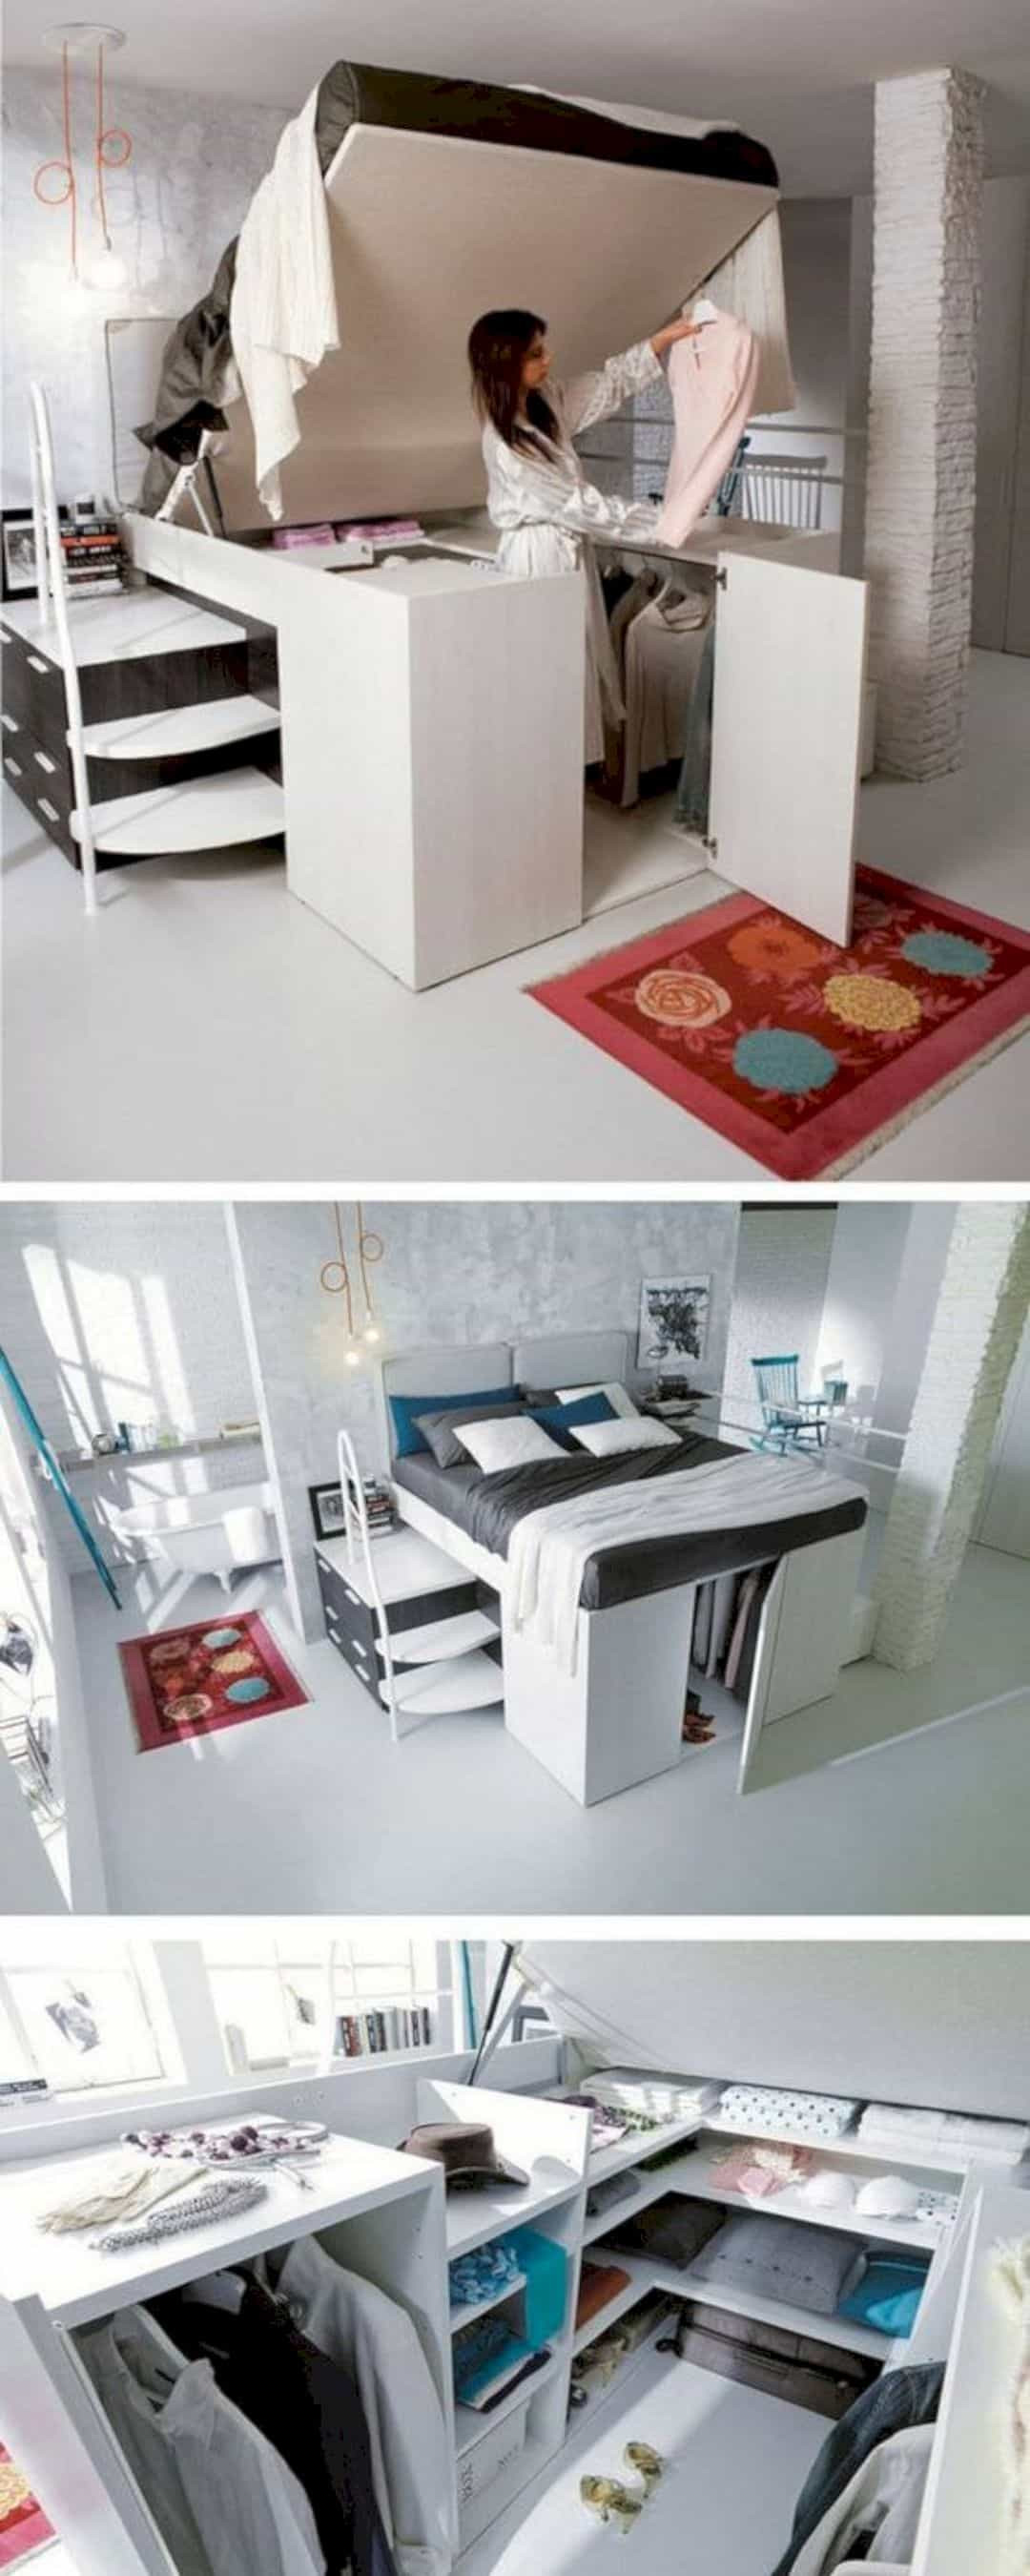 Best ideas about DIY Bedroom Organizers . Save or Pin 17 Stunning DIY Bedroom Storage Ideas – Futurist Architecture Now.